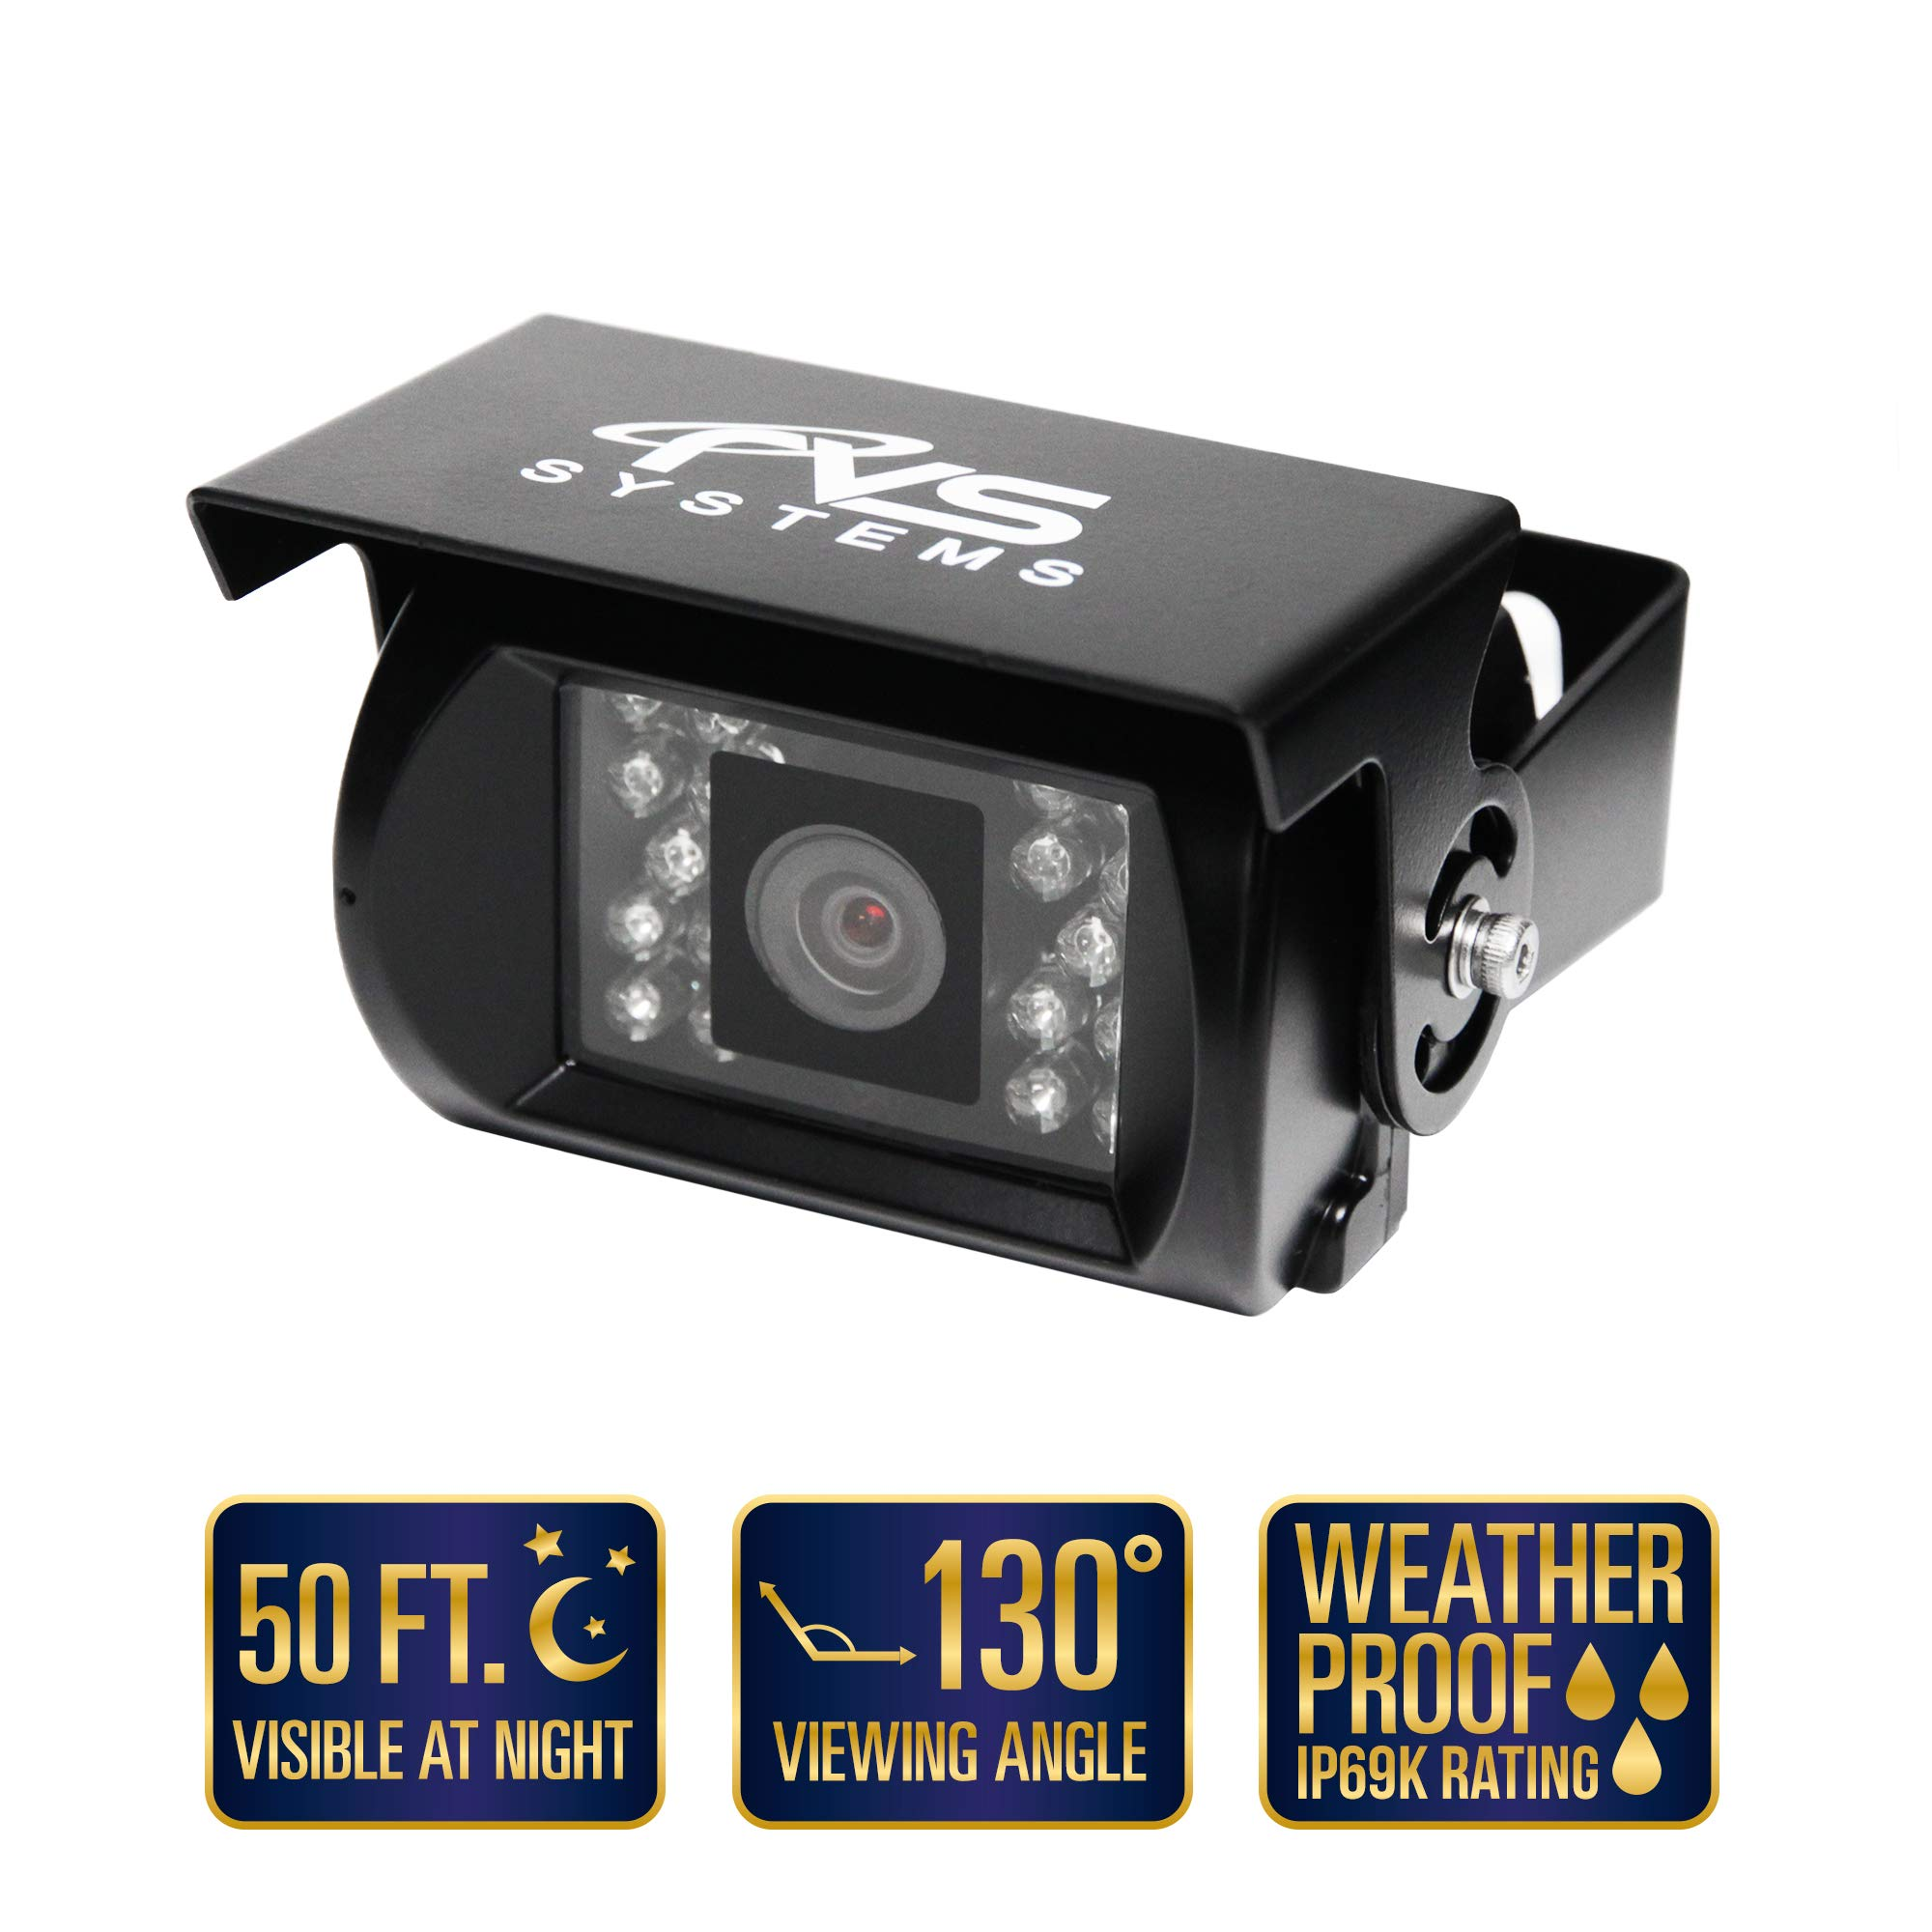 7'' Backup Camera System for RV/Truck/Bus - Waterproof Camera with Night Vision - RVS-770613-NM-01 by Rear View Safety. by Rear View Safety (Image #4)